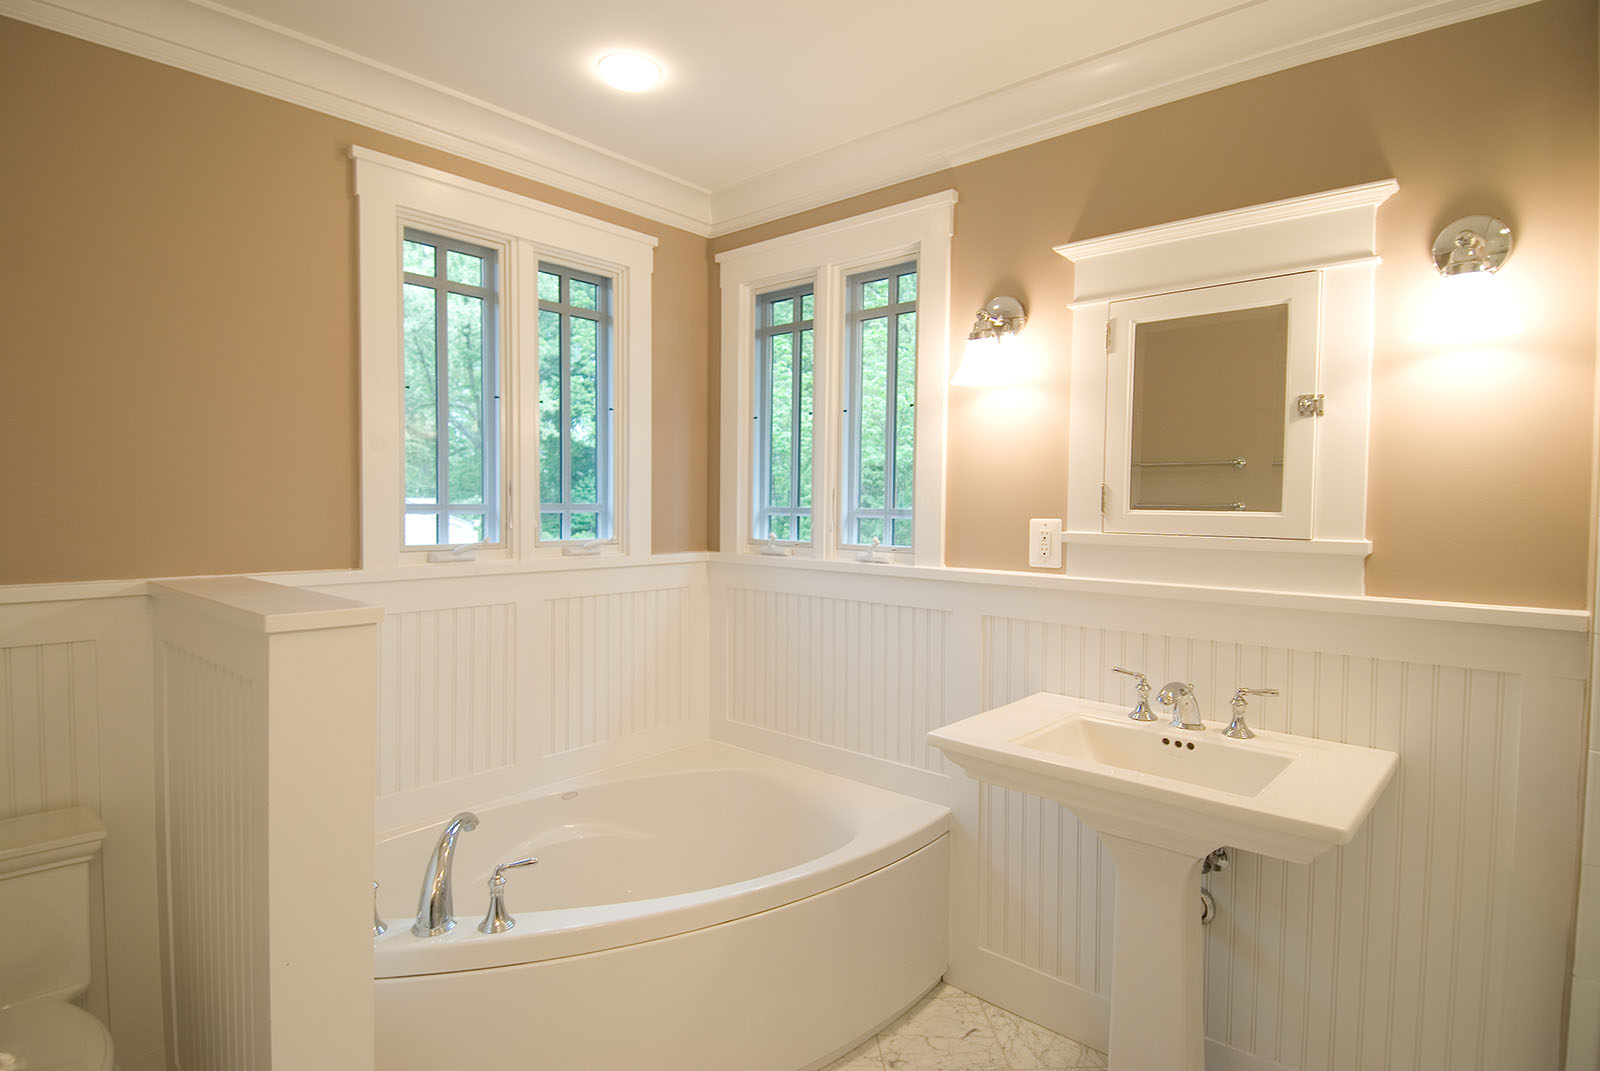 Old Bathroom Remodel Simple Bathroom Remodeling  Old Dominion Building Group Inspiration